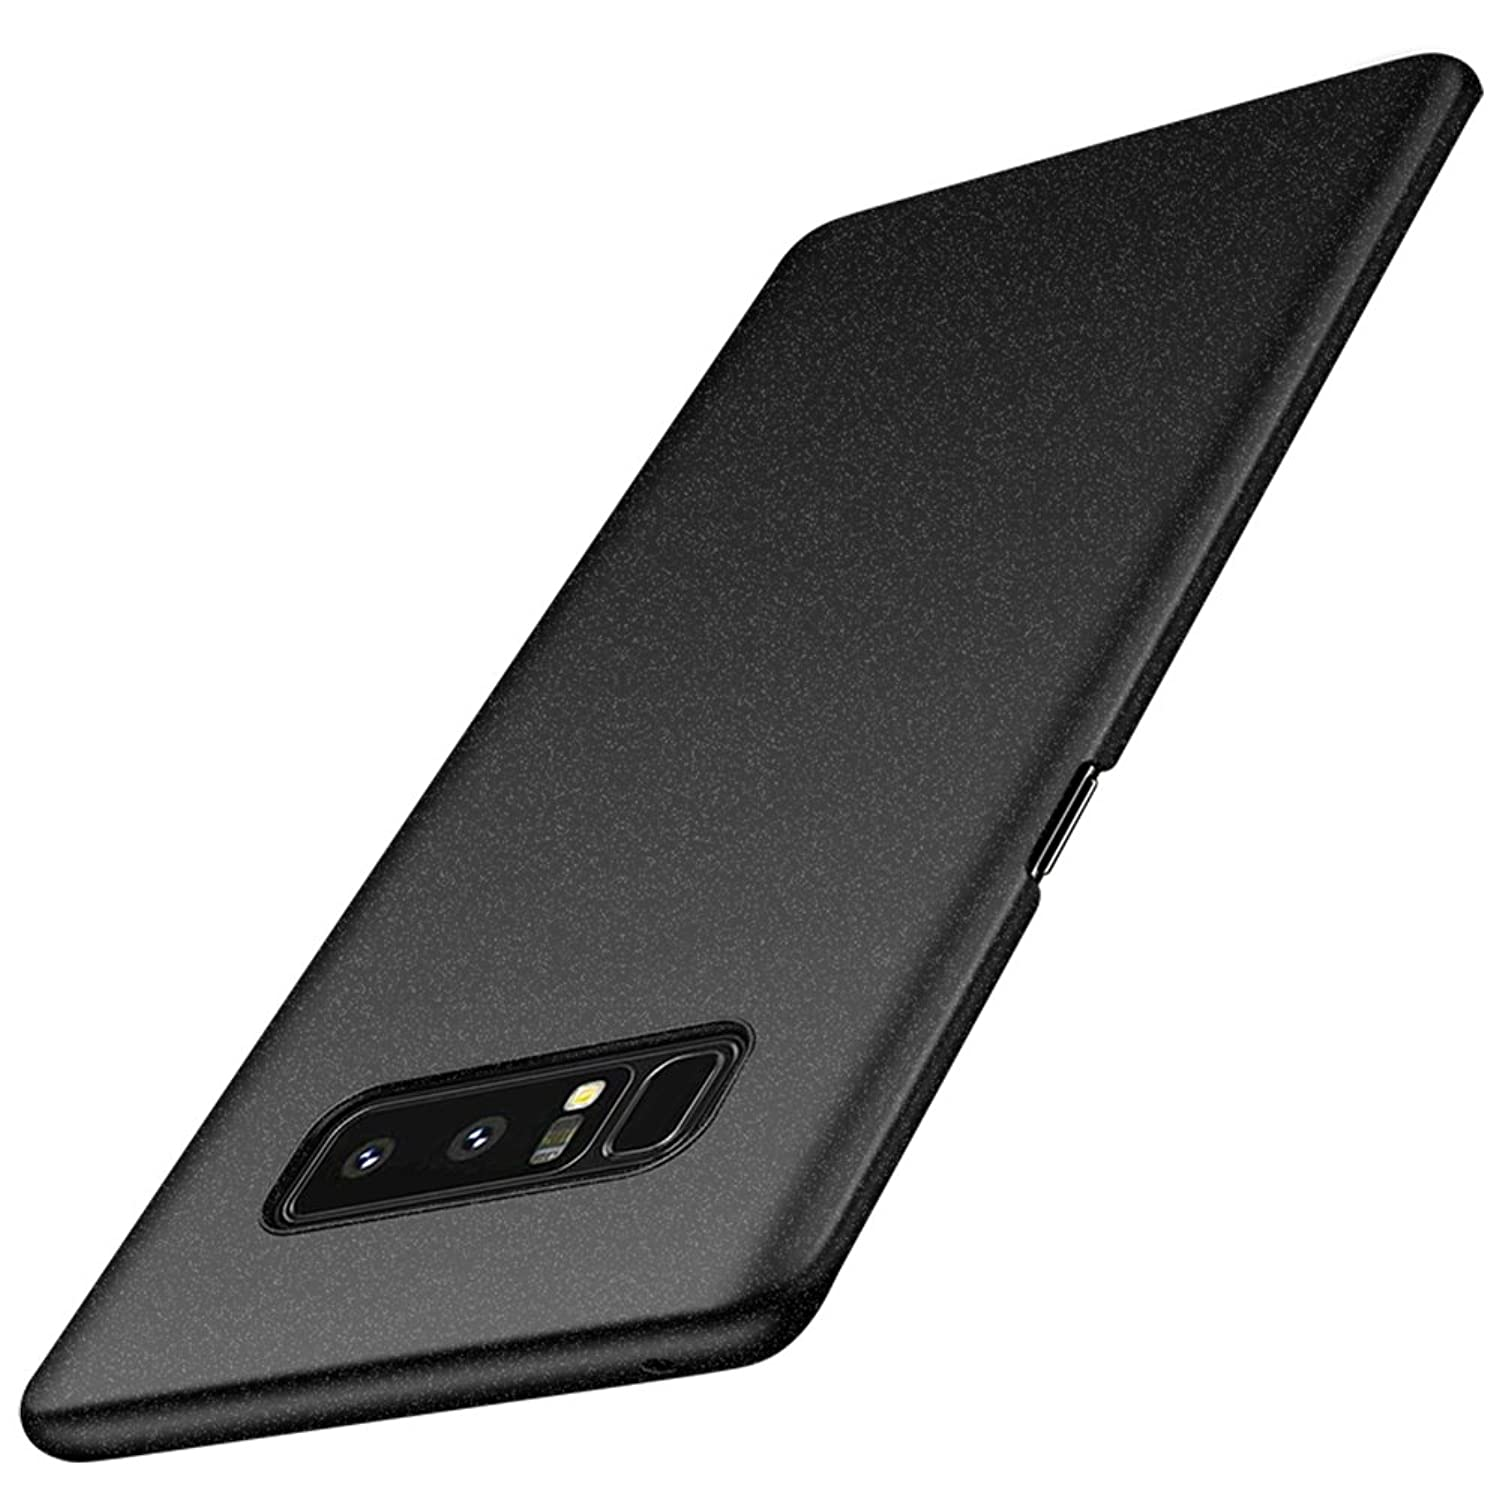 Anccer Compatible for Samsung Galaxy Note8 Case [Colorful Series] [Ultra-Thin] [Anti-Drop] Premium Material Slim Full Protection Cover for Samsung Galaxy Note 8 2017 (Matte Gray)